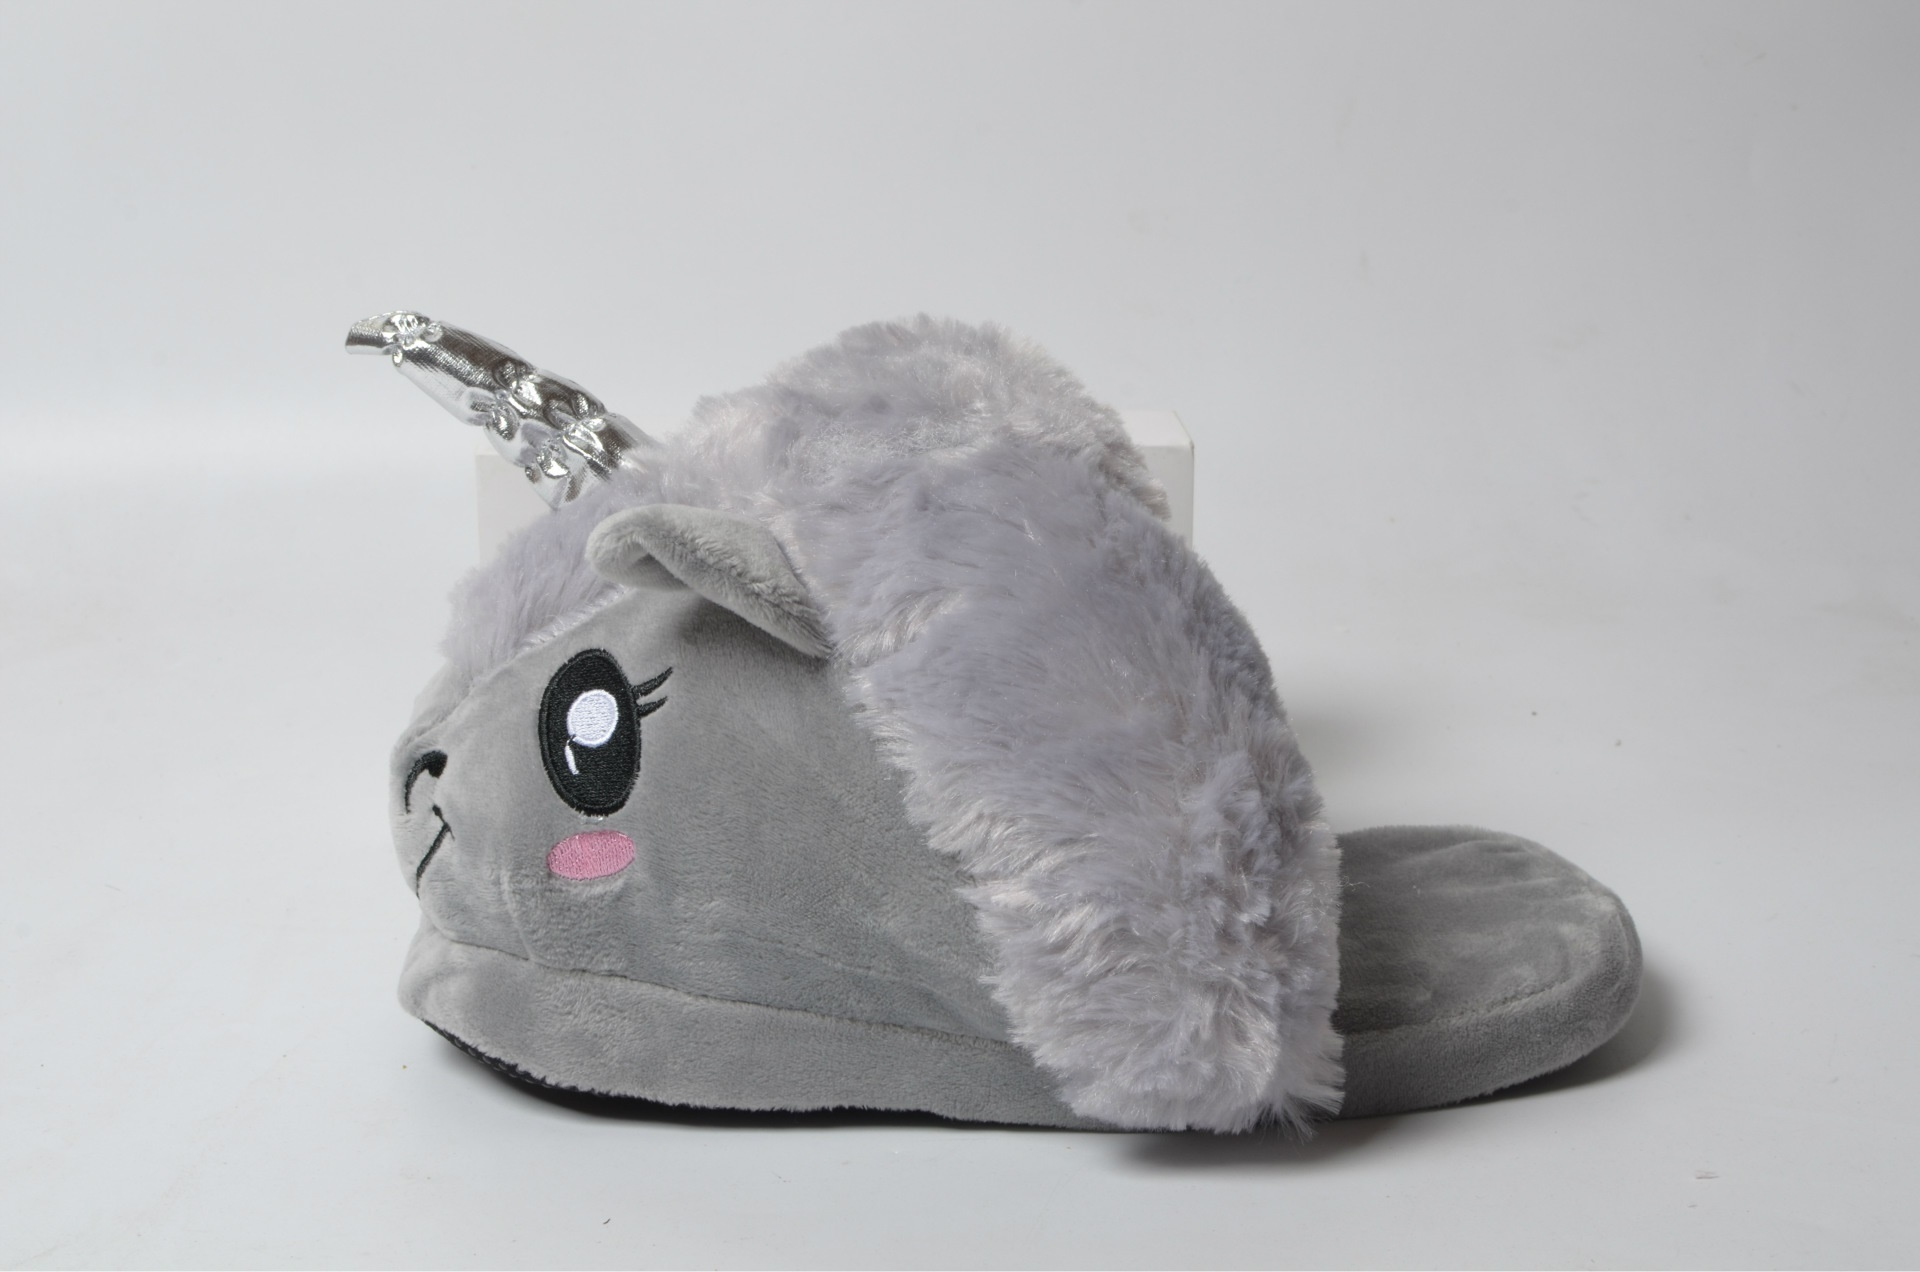 32a0d0f1c72 fit to viewer. prev next. New Unicorn Slippers Kids Winter Warm Plush Baby  Boy Girls Slippers Cotton Children Home Shoes